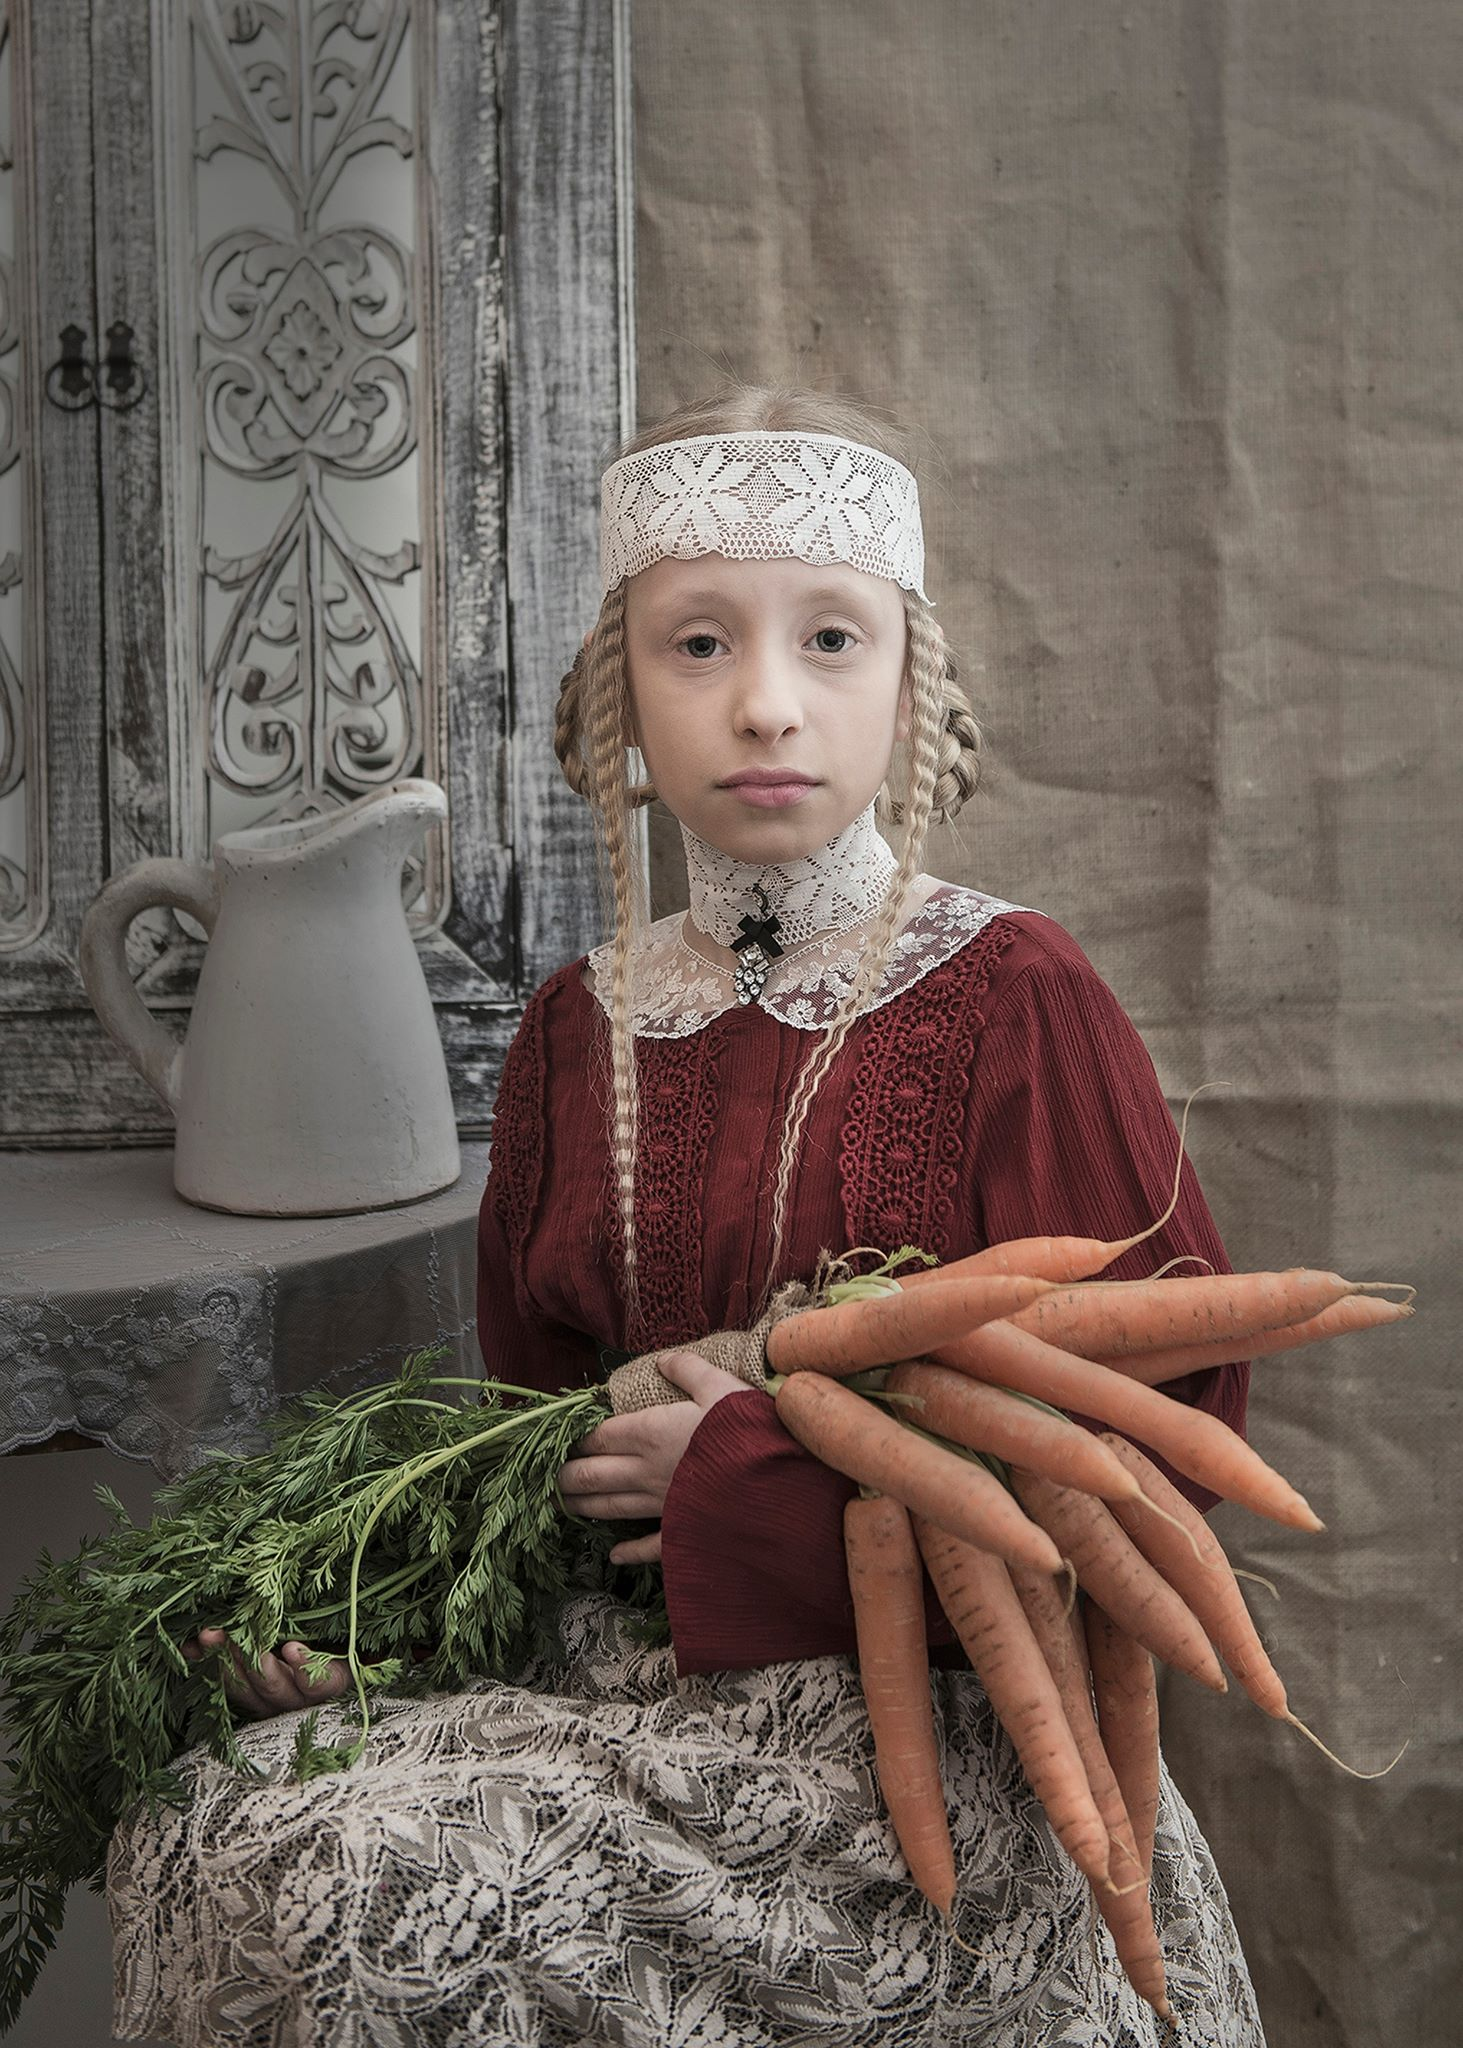 broccoli, Magdalena Walczak; mosthated, mosthatedvegetables, phoode; vegetables; kidsfood; foodphotography; foodstyling; foodprojects; healtyfood; foodadvertising, carrots